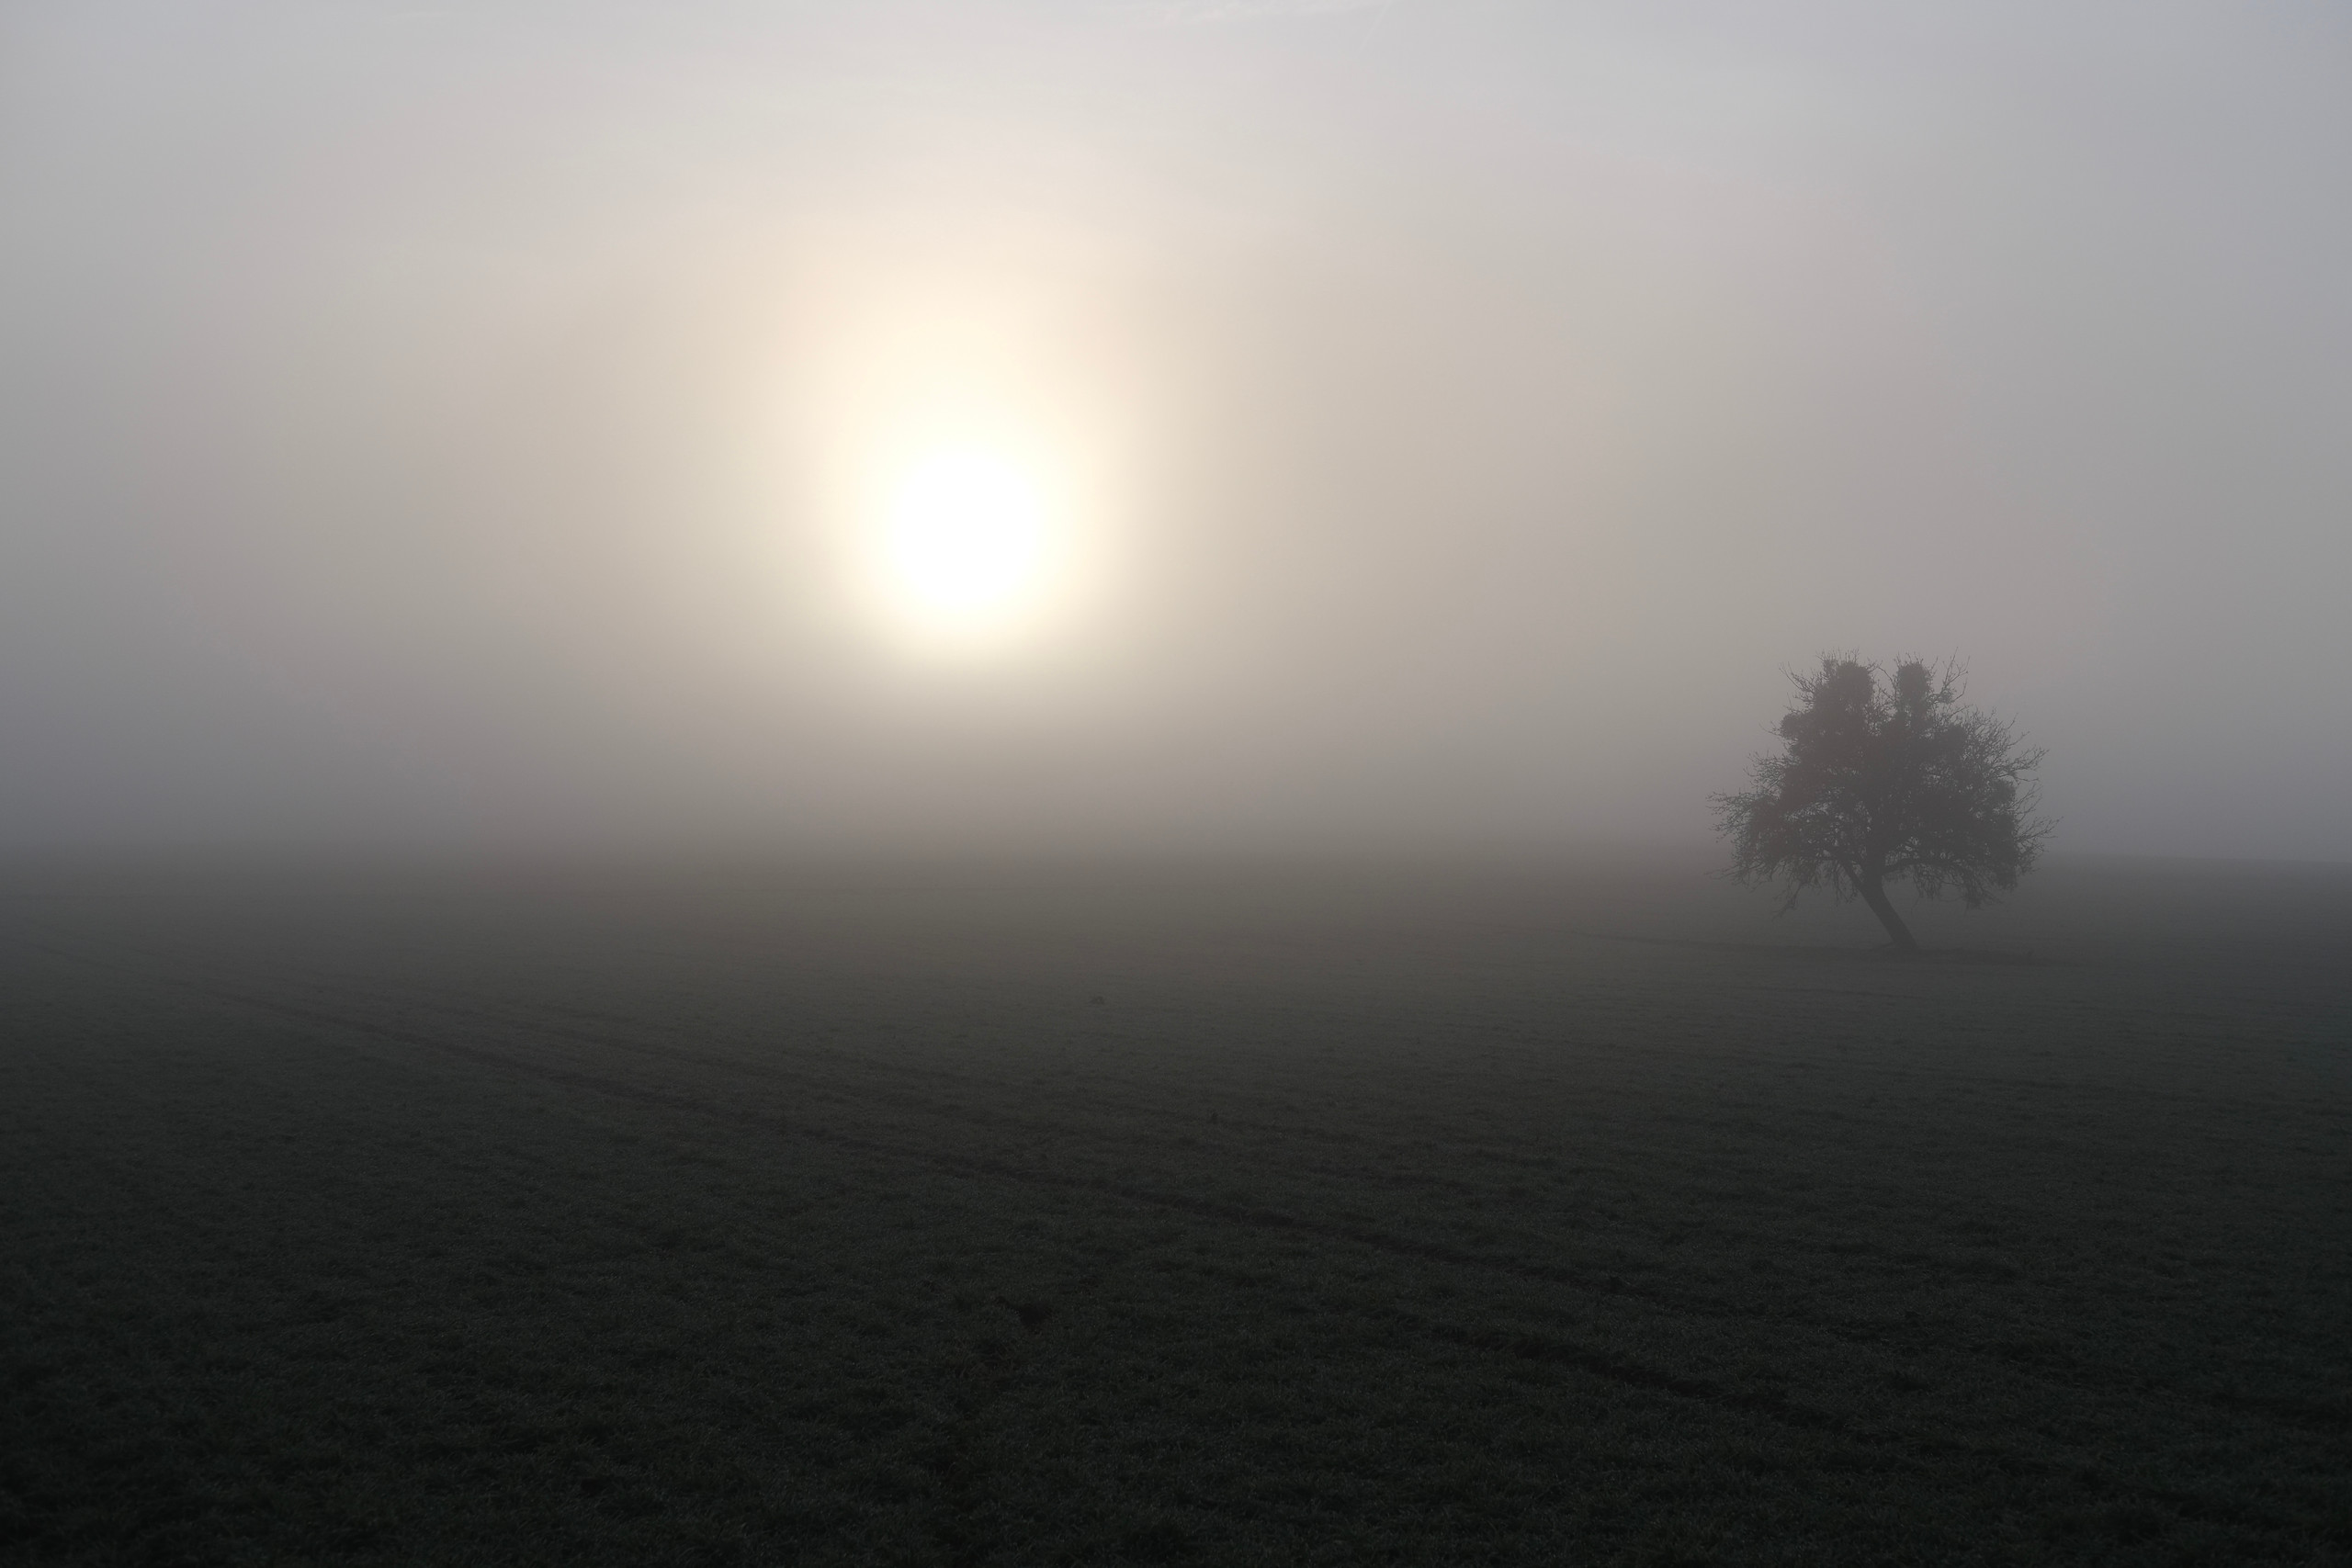 Winter field with frost covering the green and the sun behind fog, a tree in stark contrast